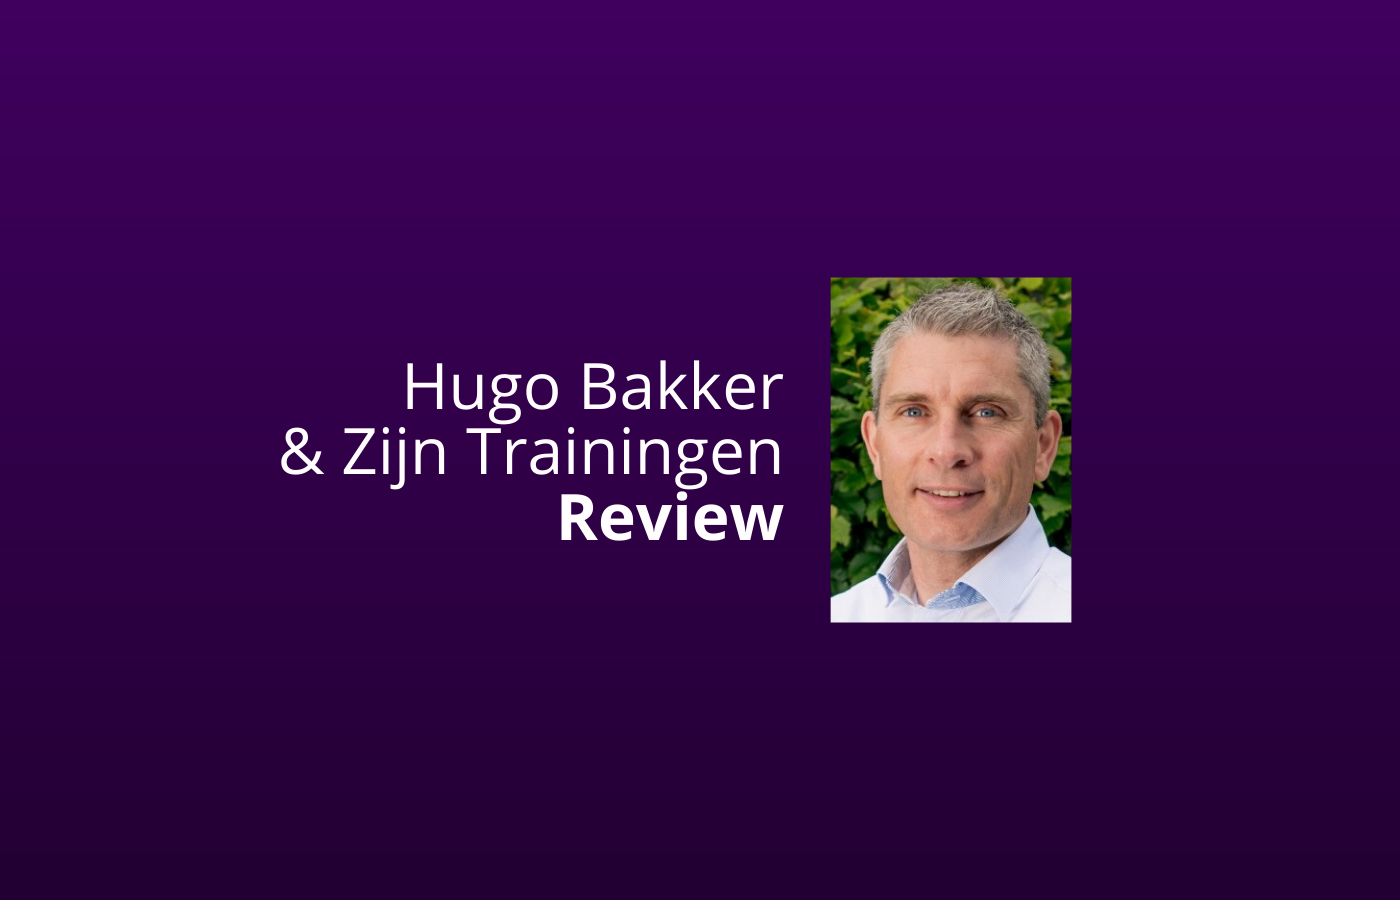 hugo bakker review van zijn trainingen